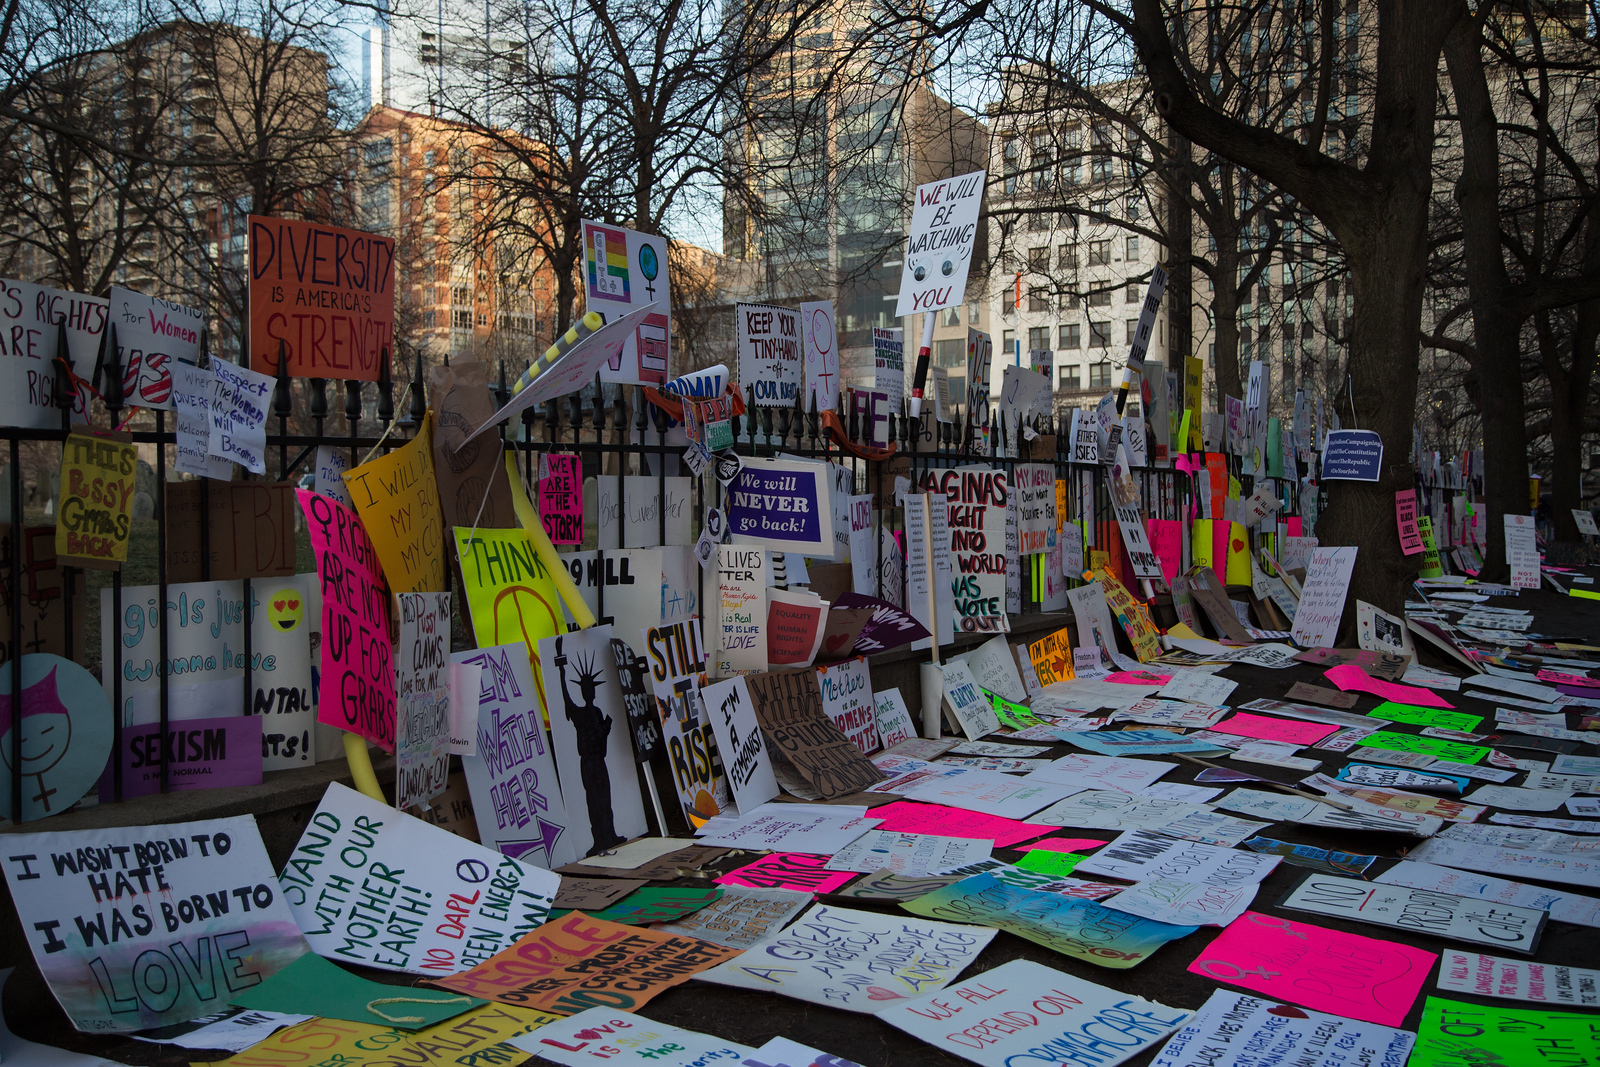 protest sign's